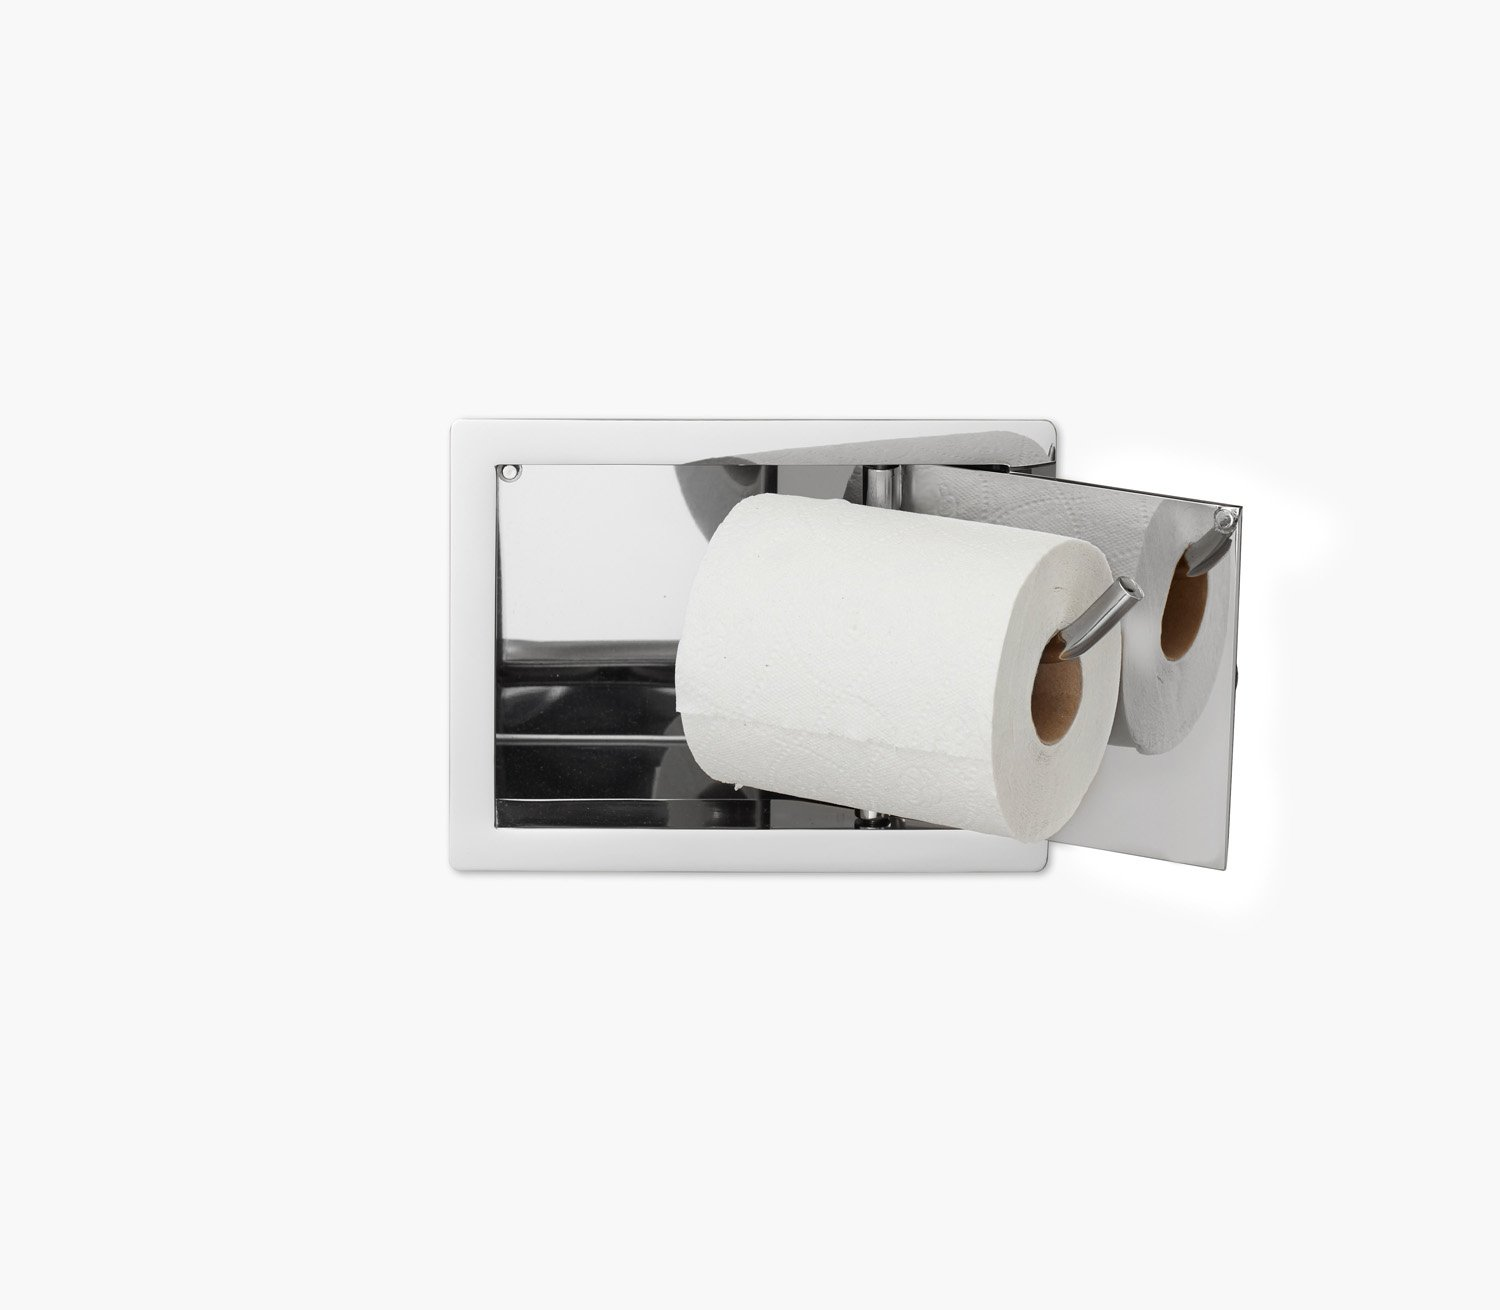 Wall Recessed Toilet Paper Holder II Product Image 6